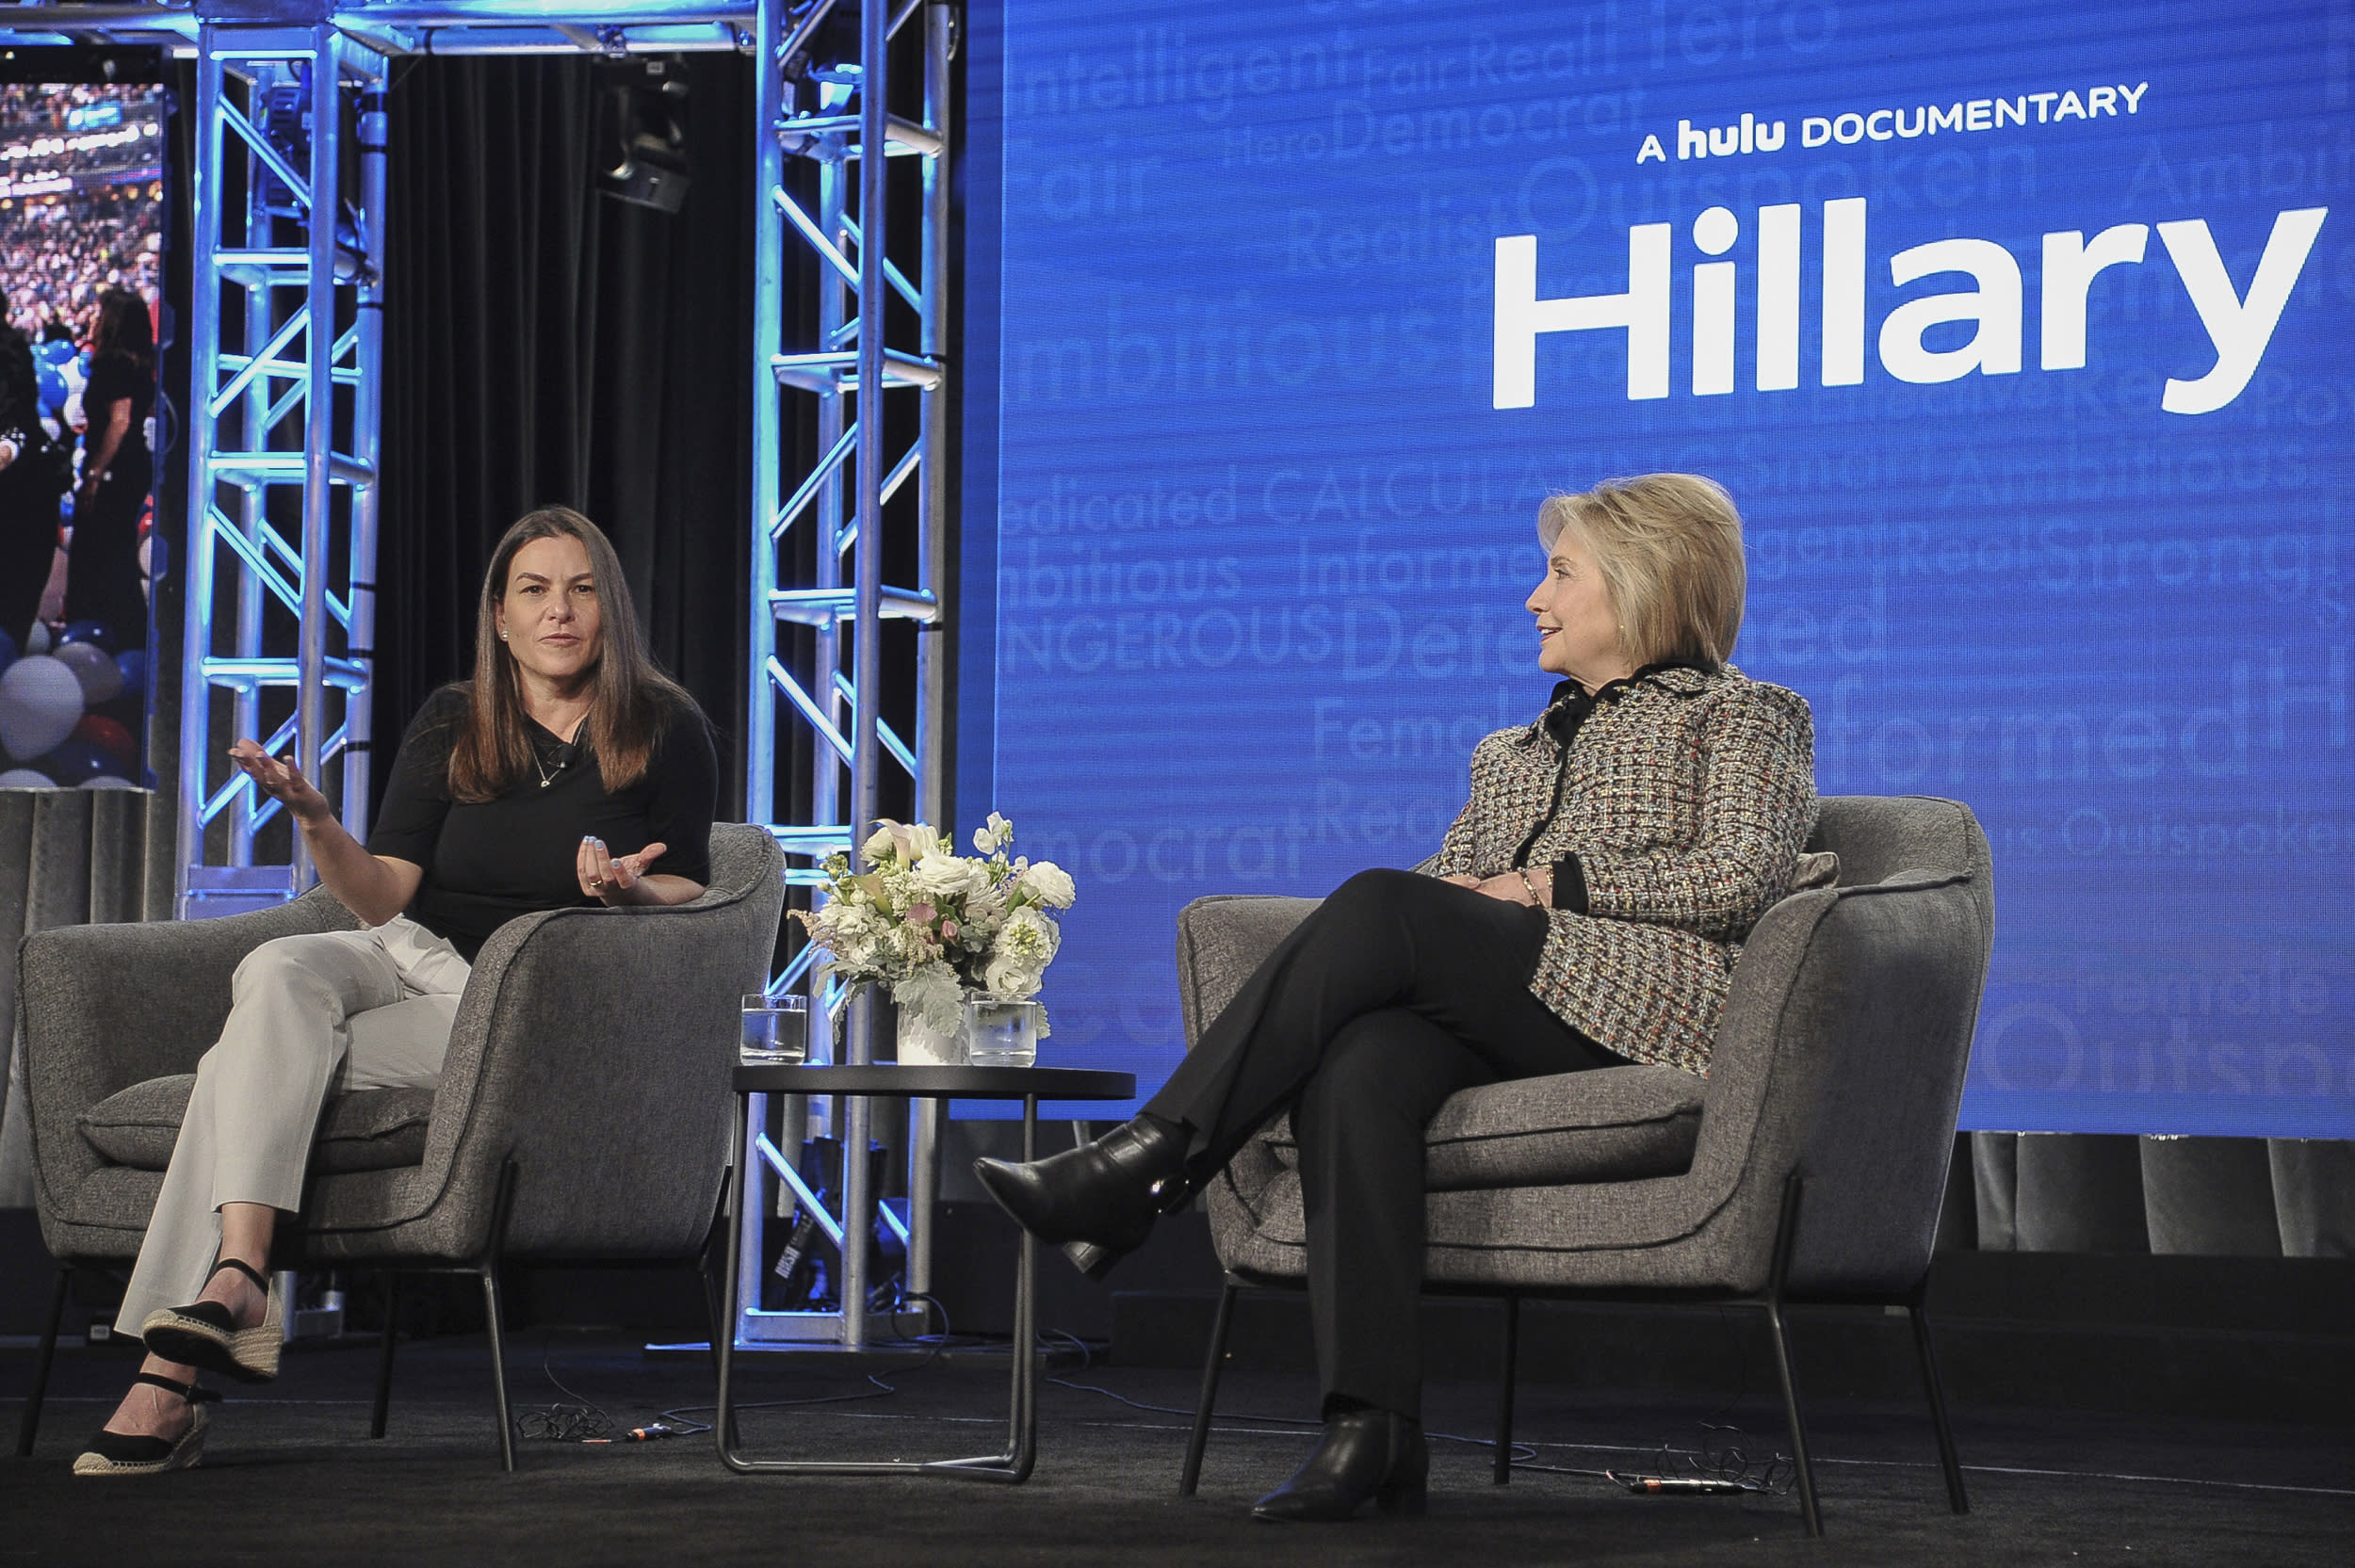 Hillary Clinton docuseries coming to Hulu